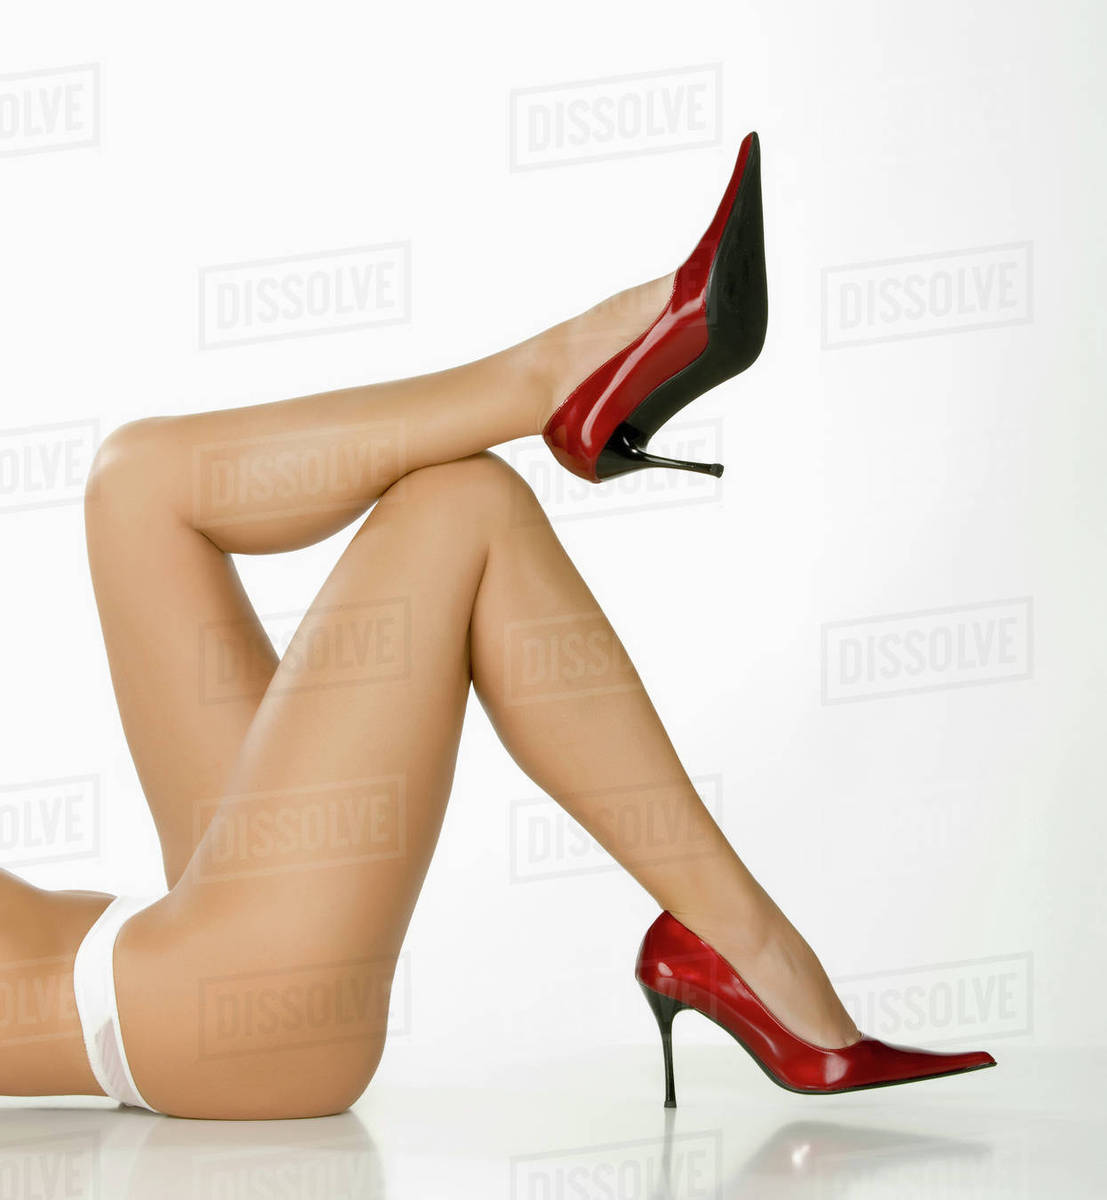 Caucasian Photo Stock Of On Heels Floor High Laying Legs Woman Wearing F3JulTK1c